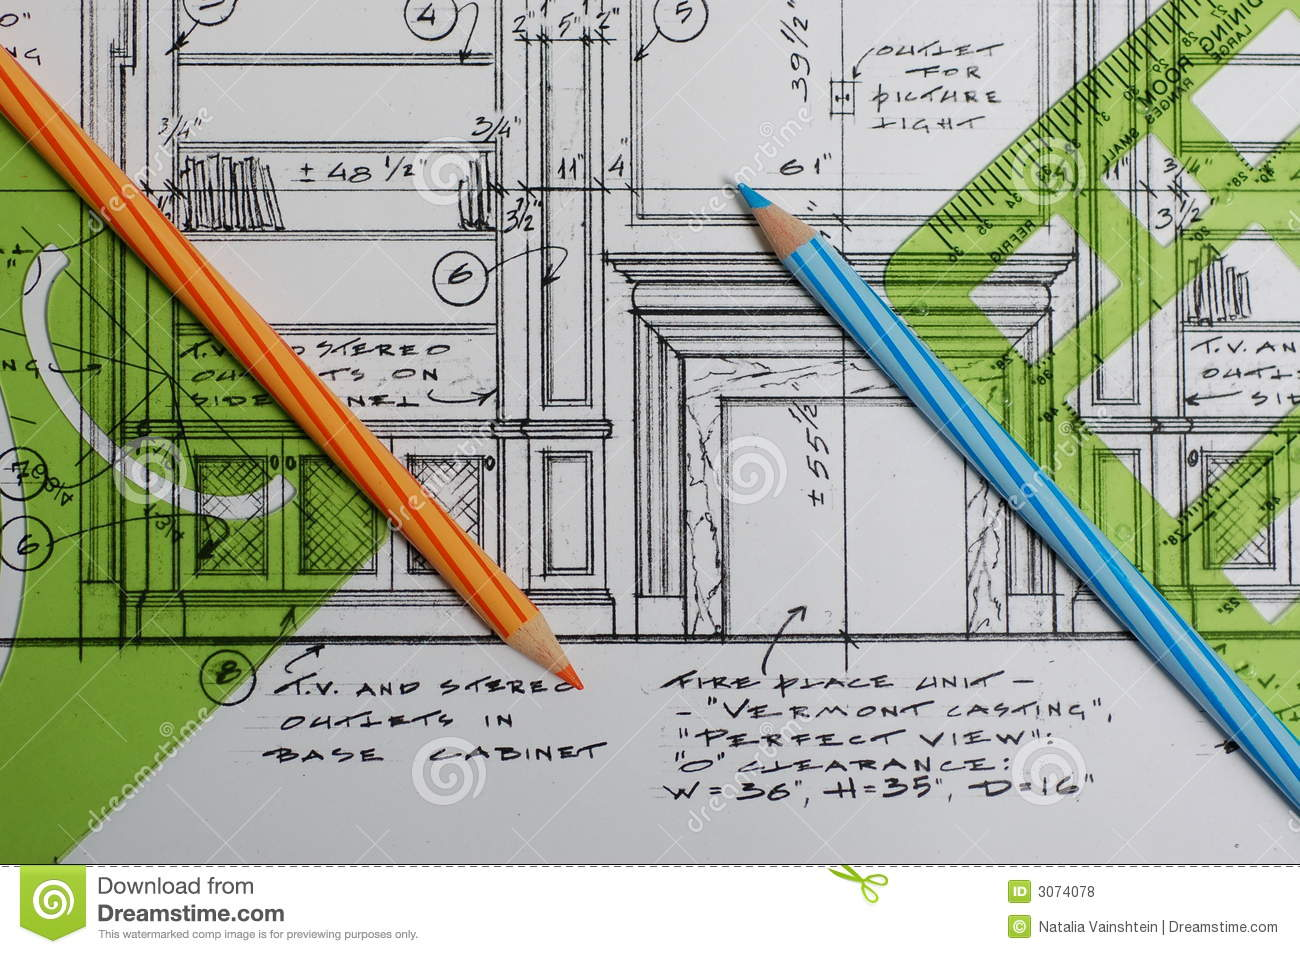 Interior design drawings royalty free stock photos image for Interior design drawing